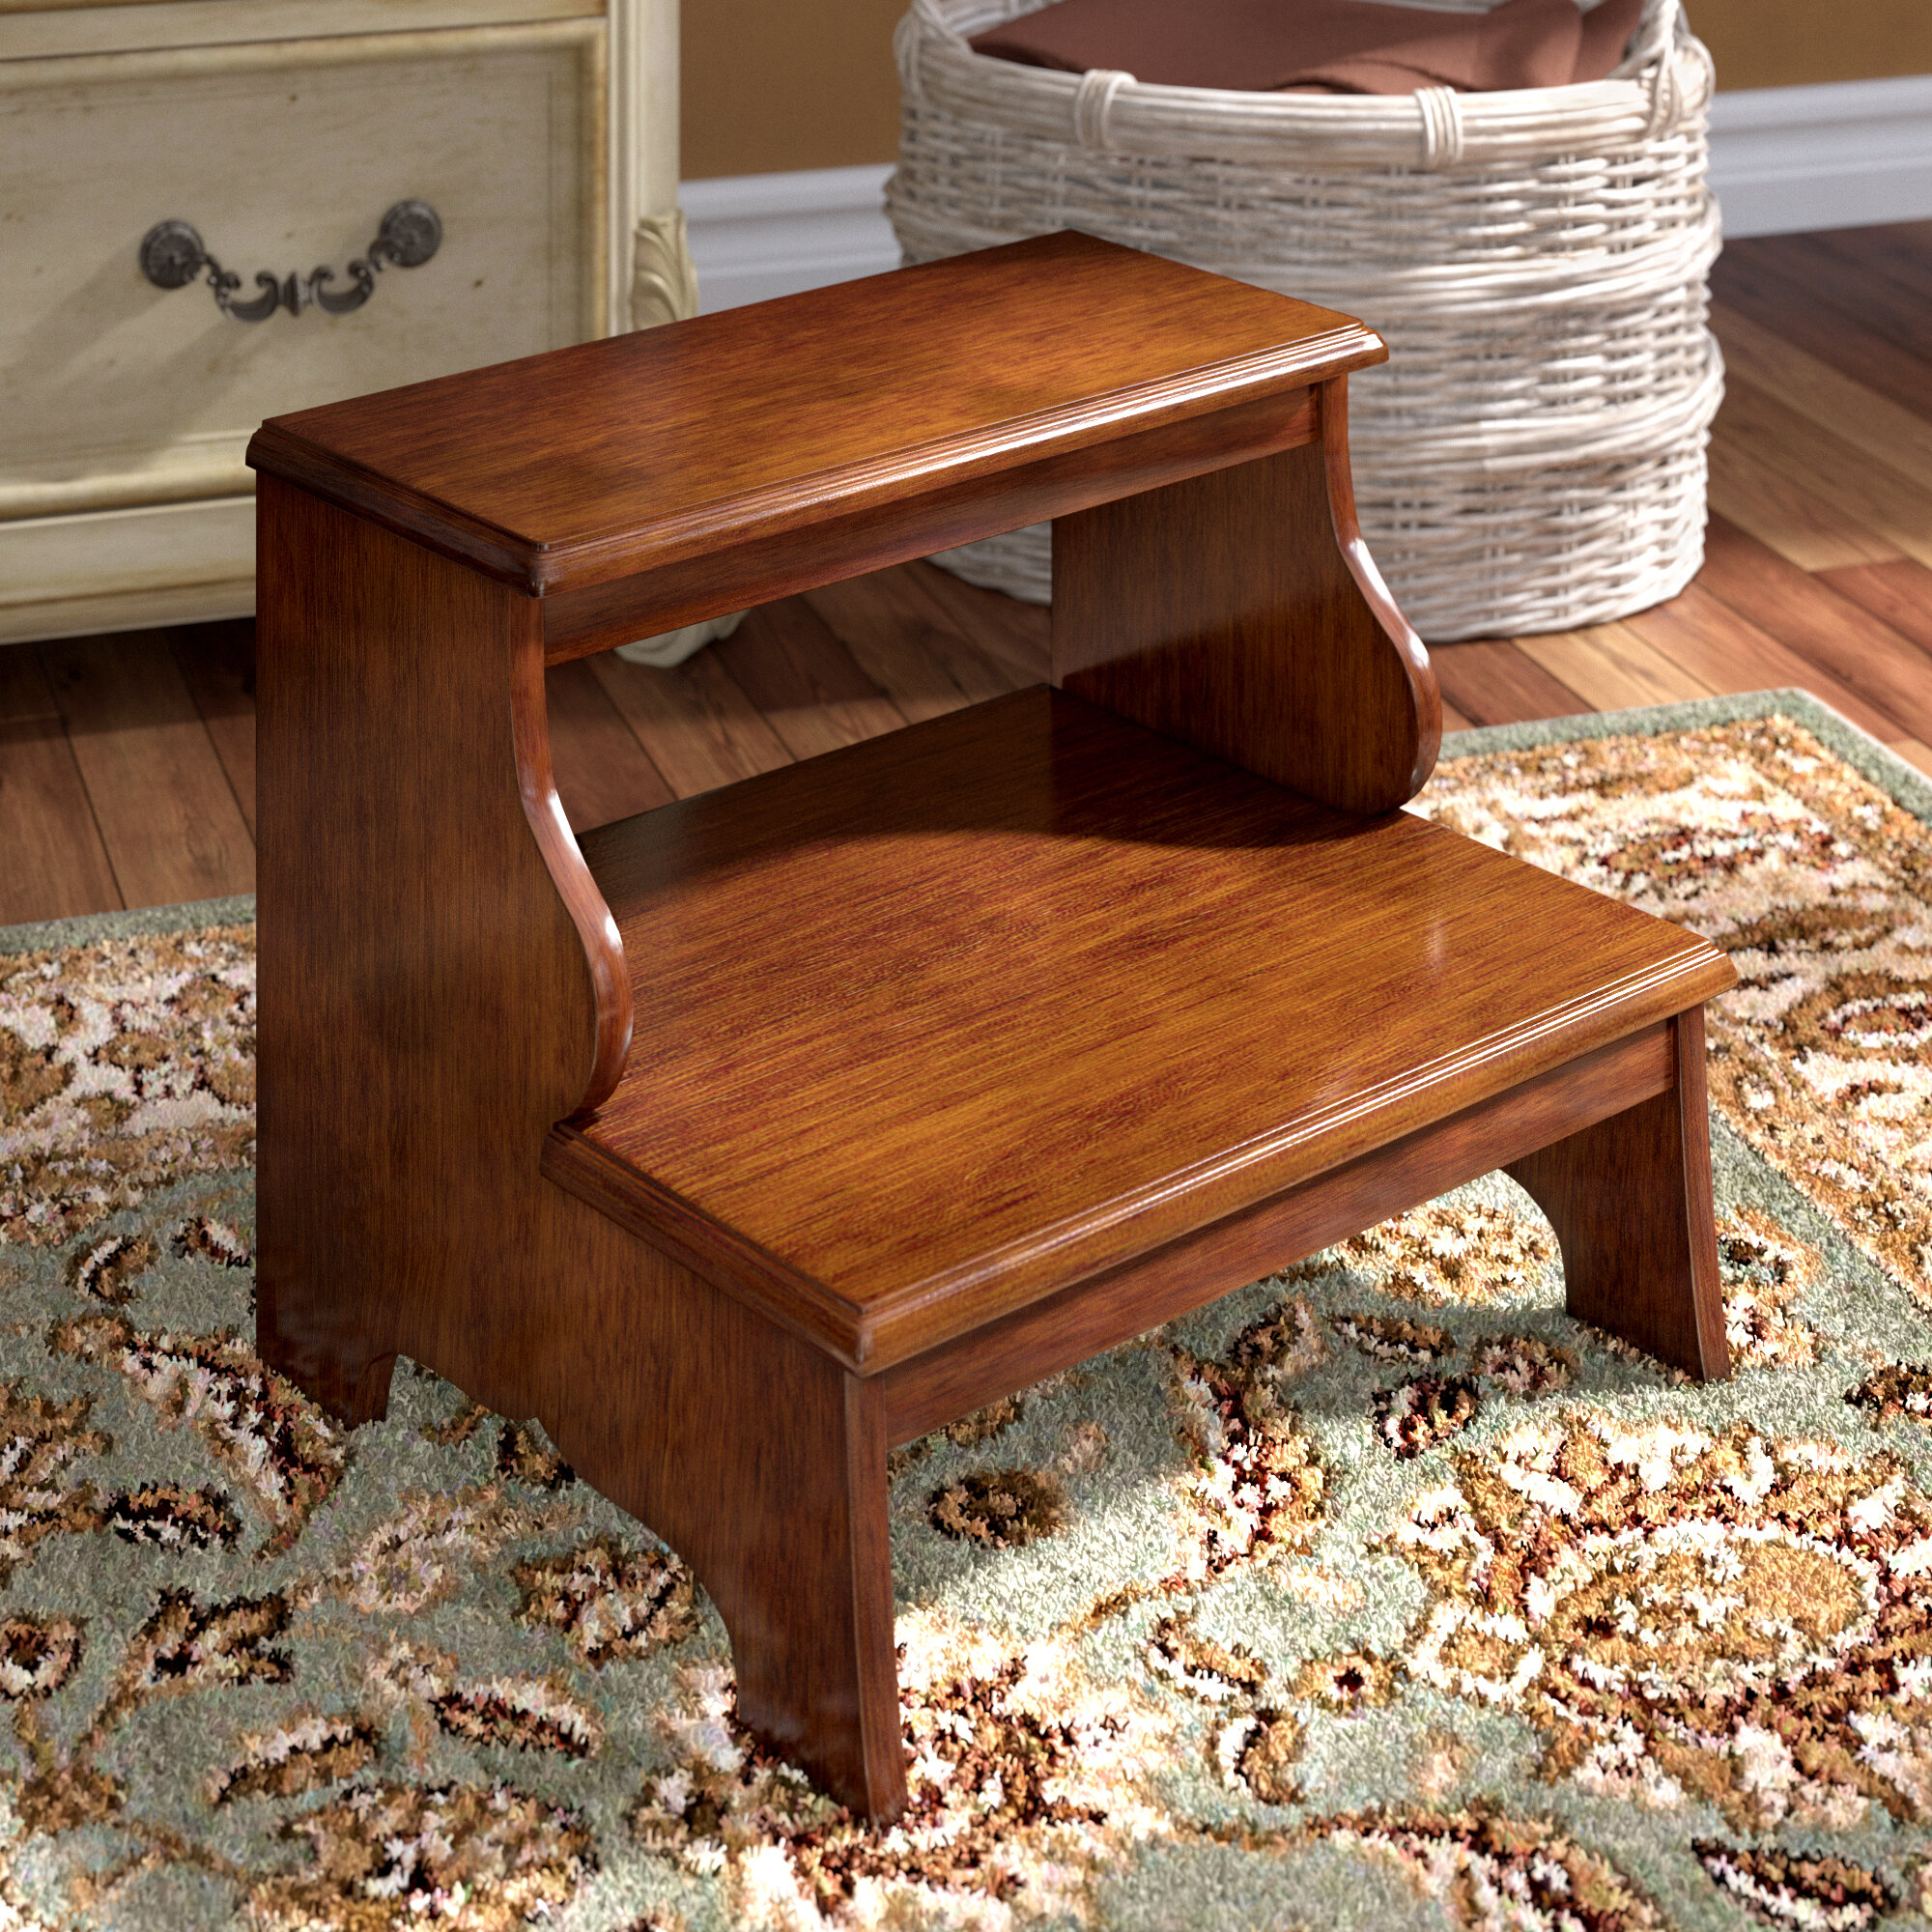 Phenomenal Willard 2 Step Wood Step Stool With 375 Lb Load Capacity Machost Co Dining Chair Design Ideas Machostcouk